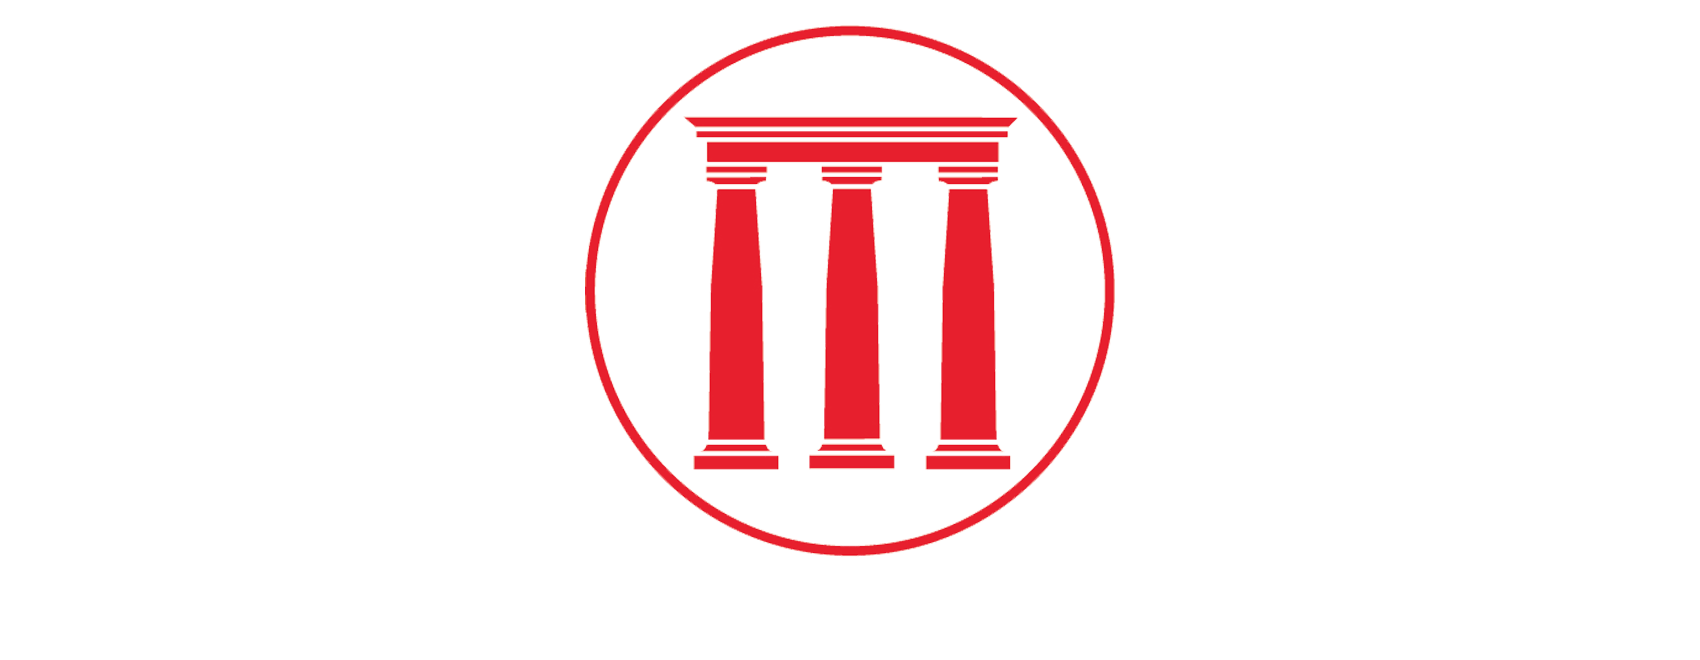 Martin Methodist Logo